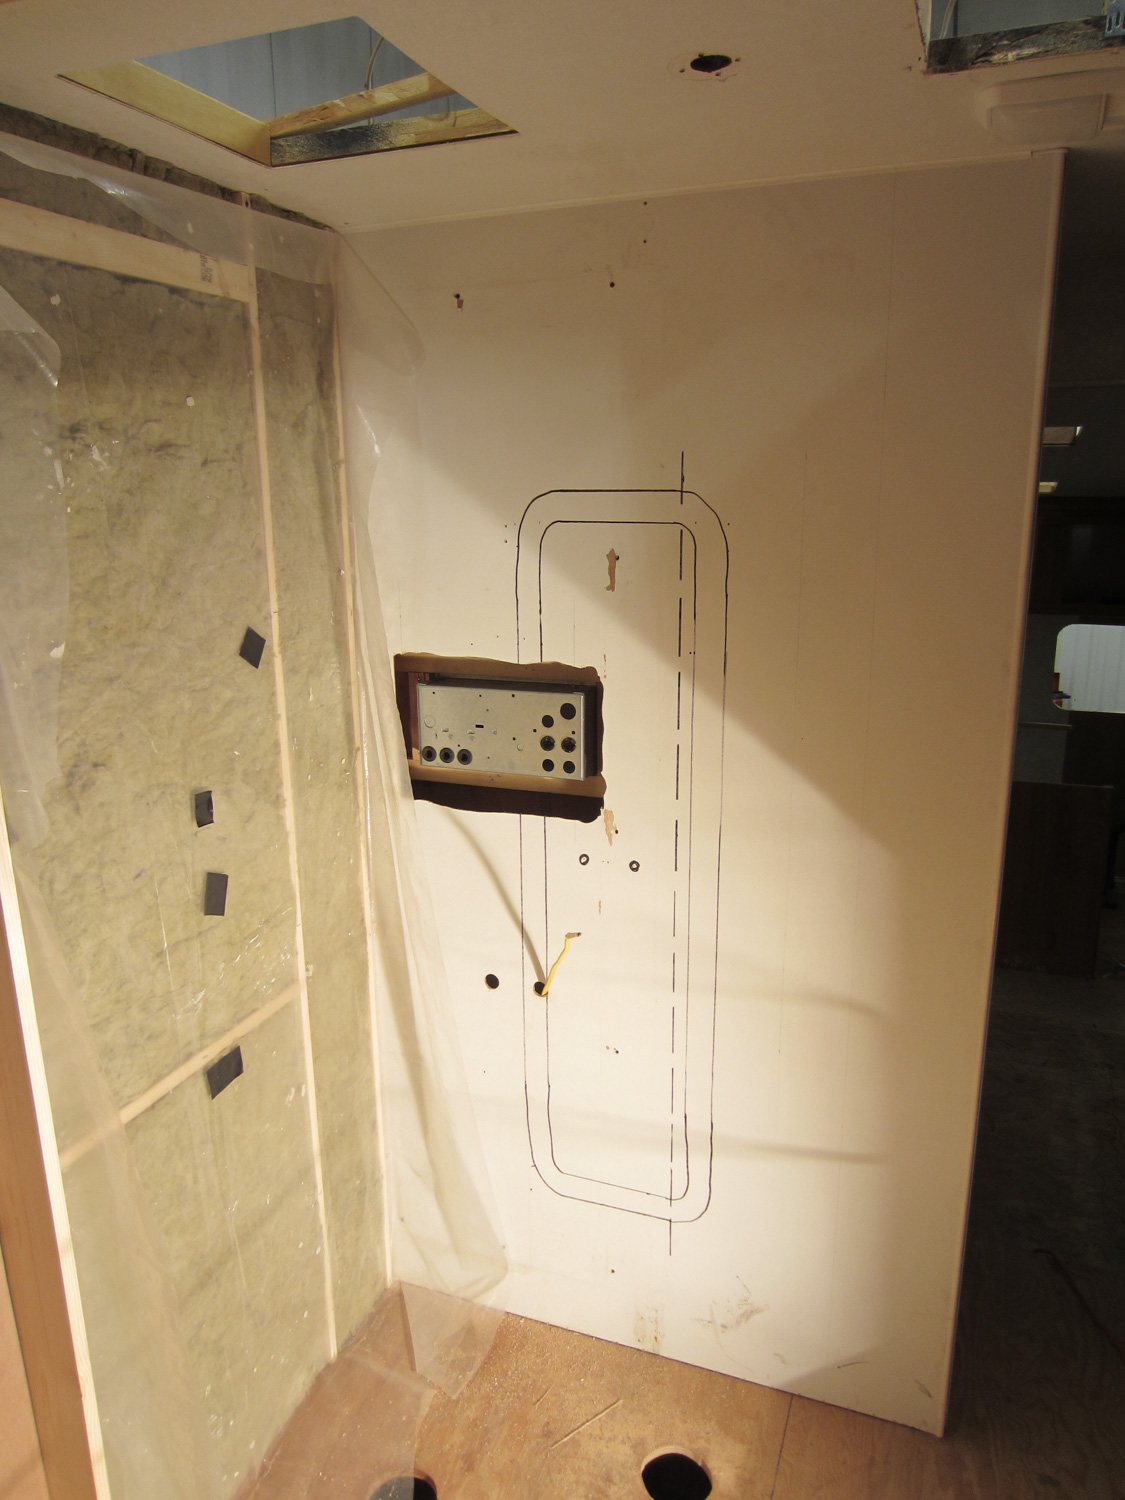 We moved the distribution panel from underneath the fridge to the wall between the shower and the toilet.